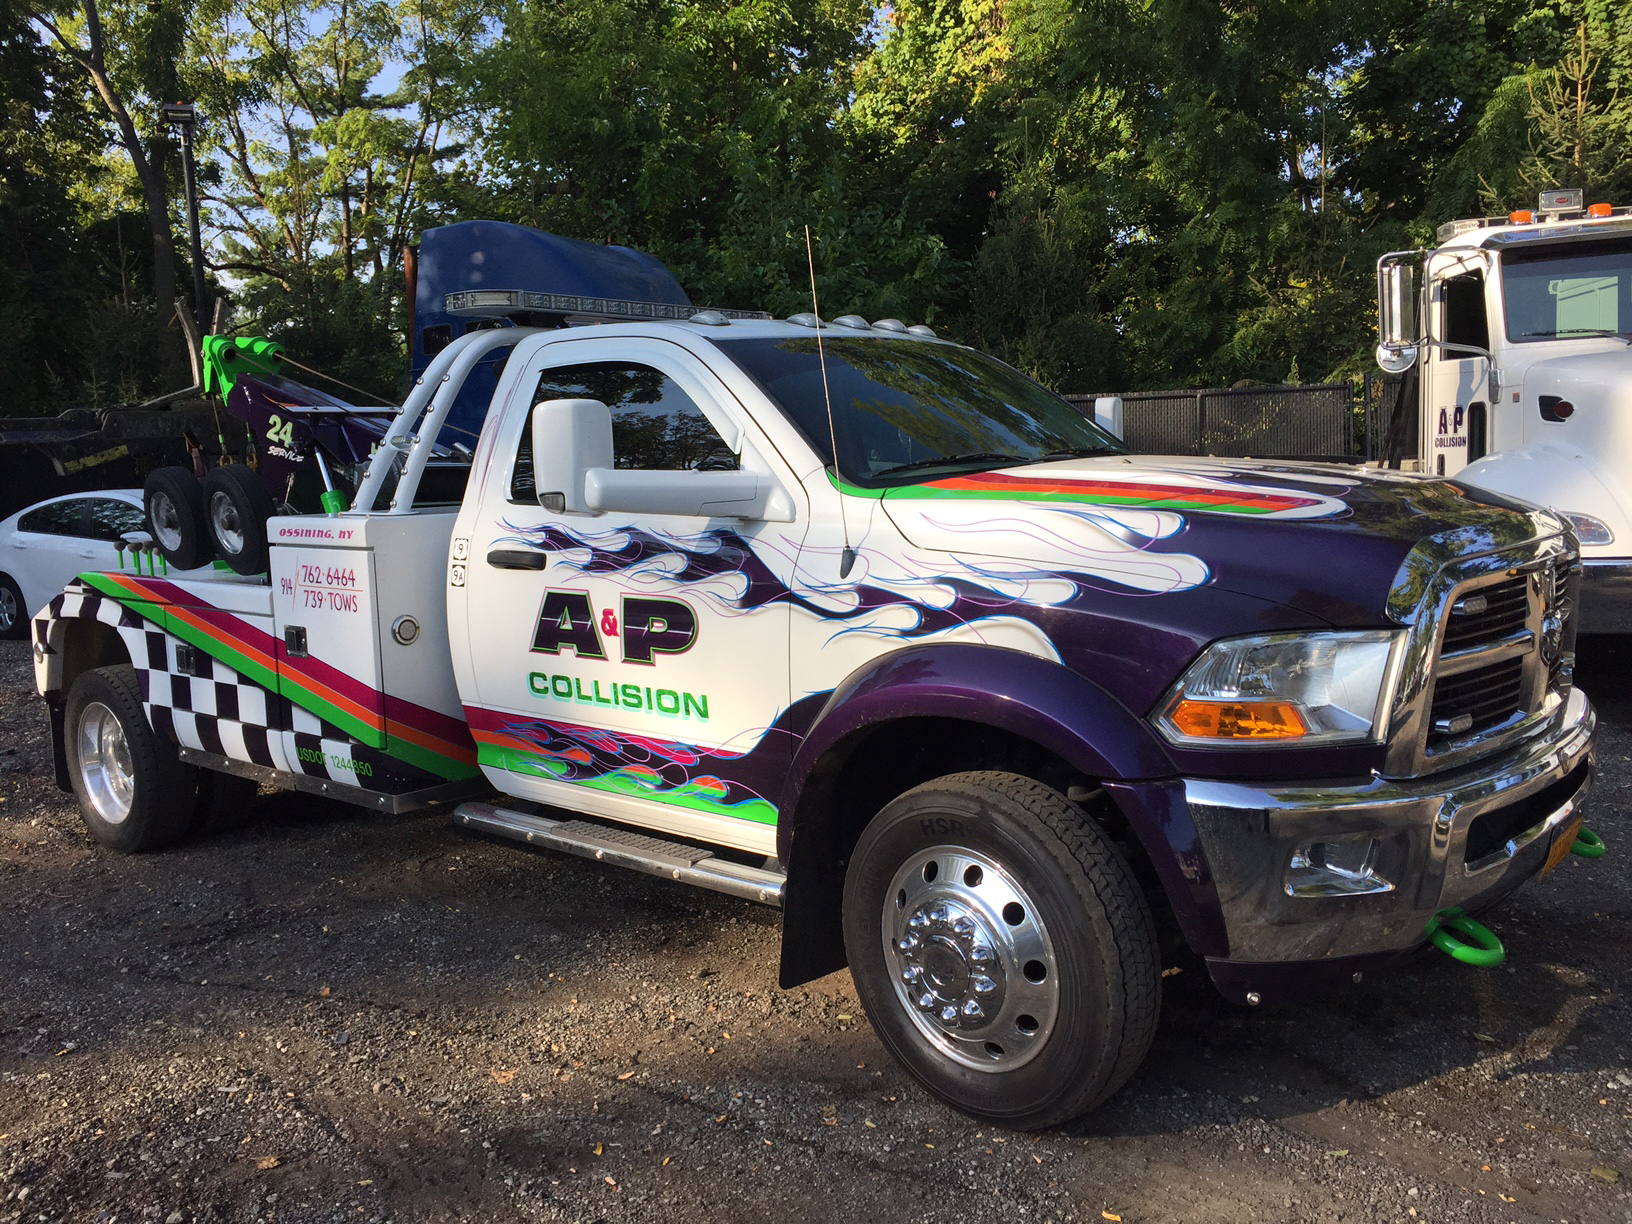 A & P Towing